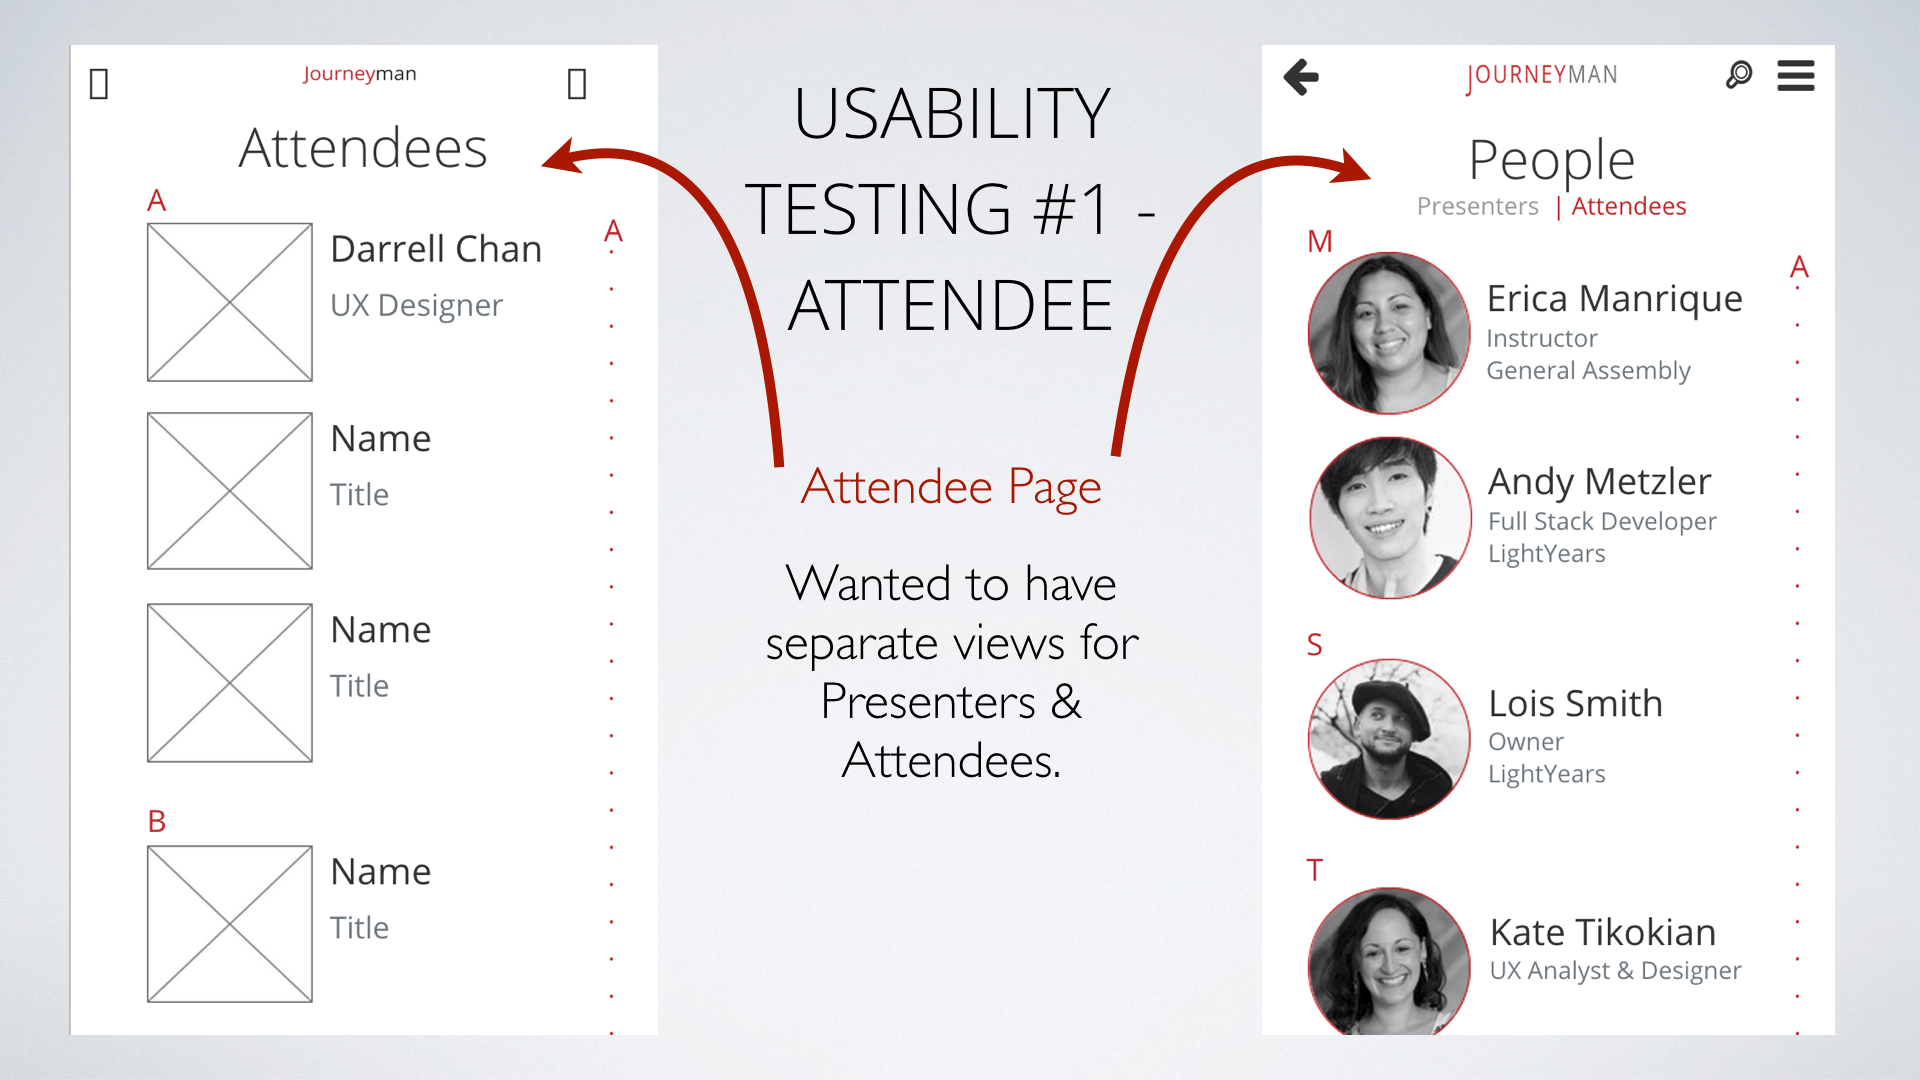 Attendee Usability Outcome #1